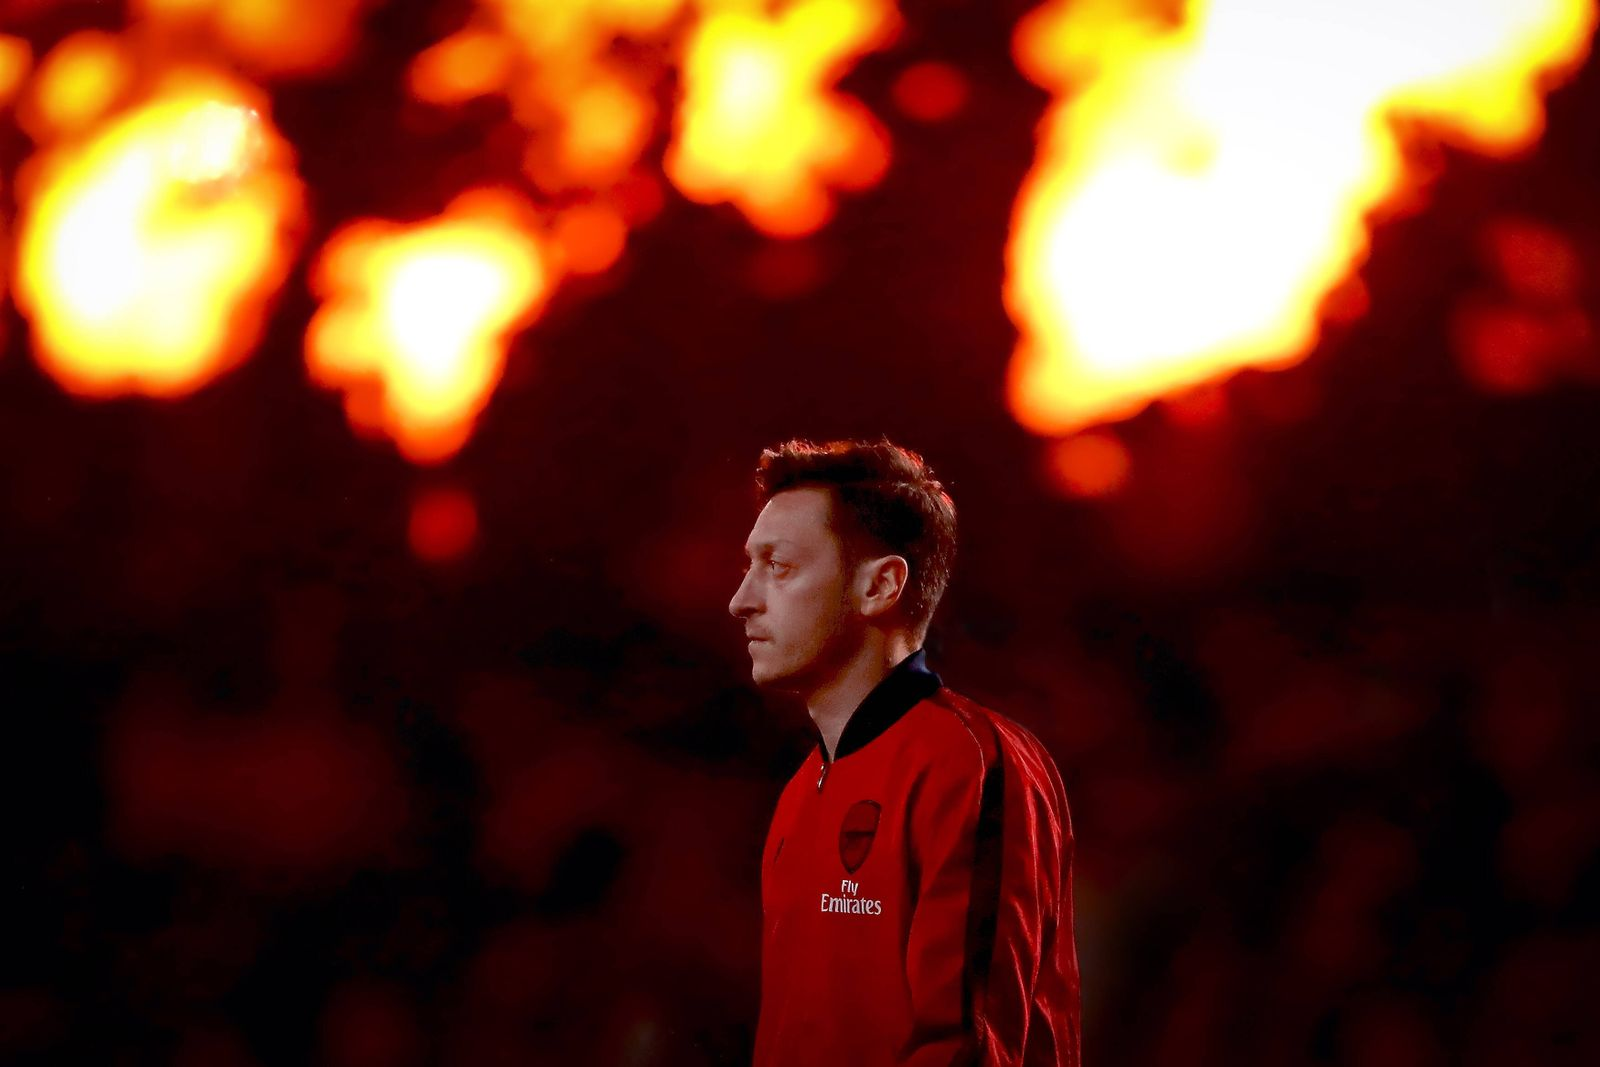 January 21, 2020, London, United Kingdom: Mesut Ozil of Arsenal during the Premier League match between Chelsea and Ars